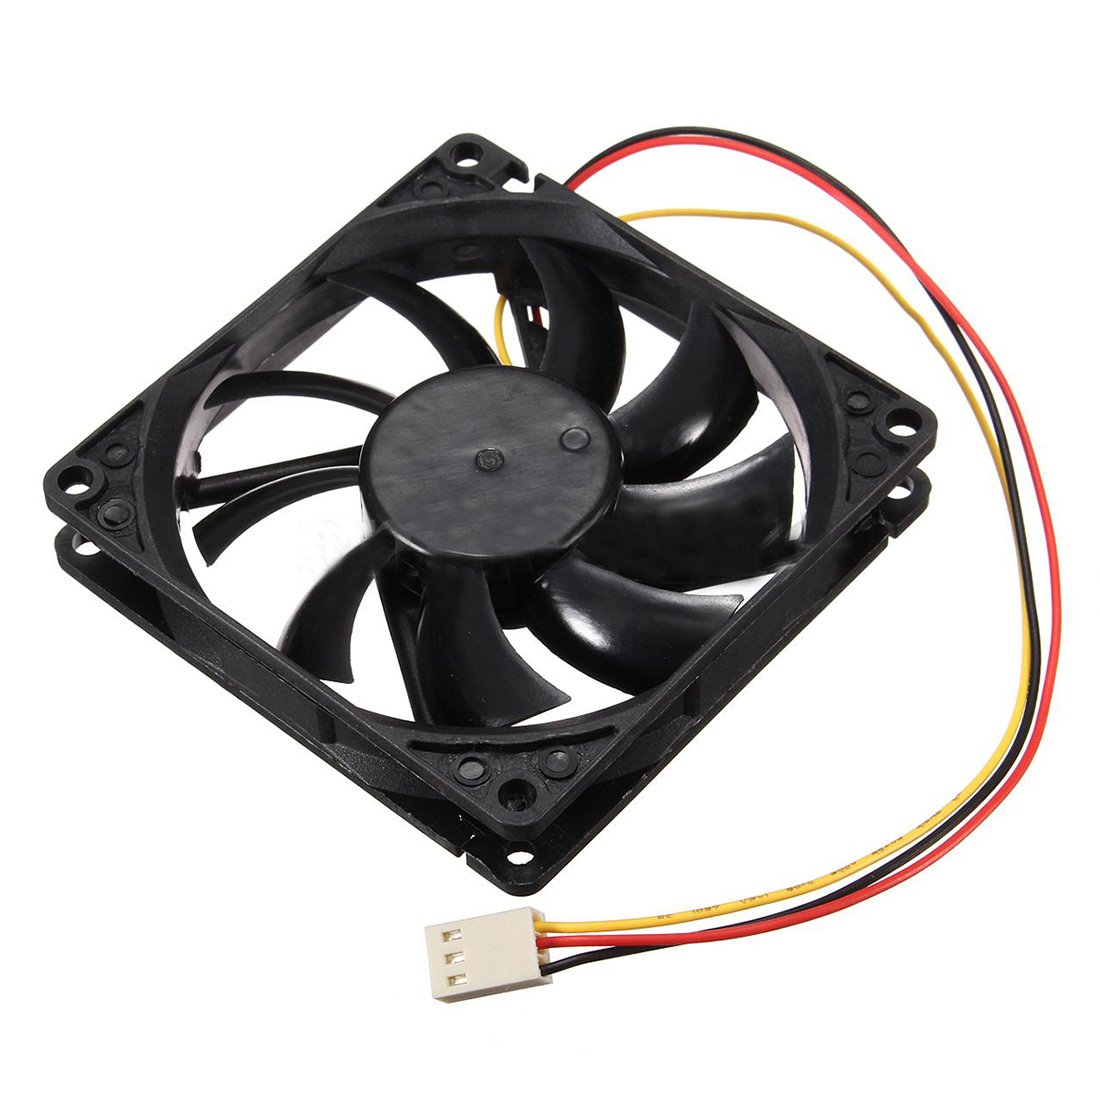 12V 3 Pin CPU Fan Heatsink Cooler Heatsink Fan For PC 80x80x15mm for asus u46e heatsink cooling fan cooler